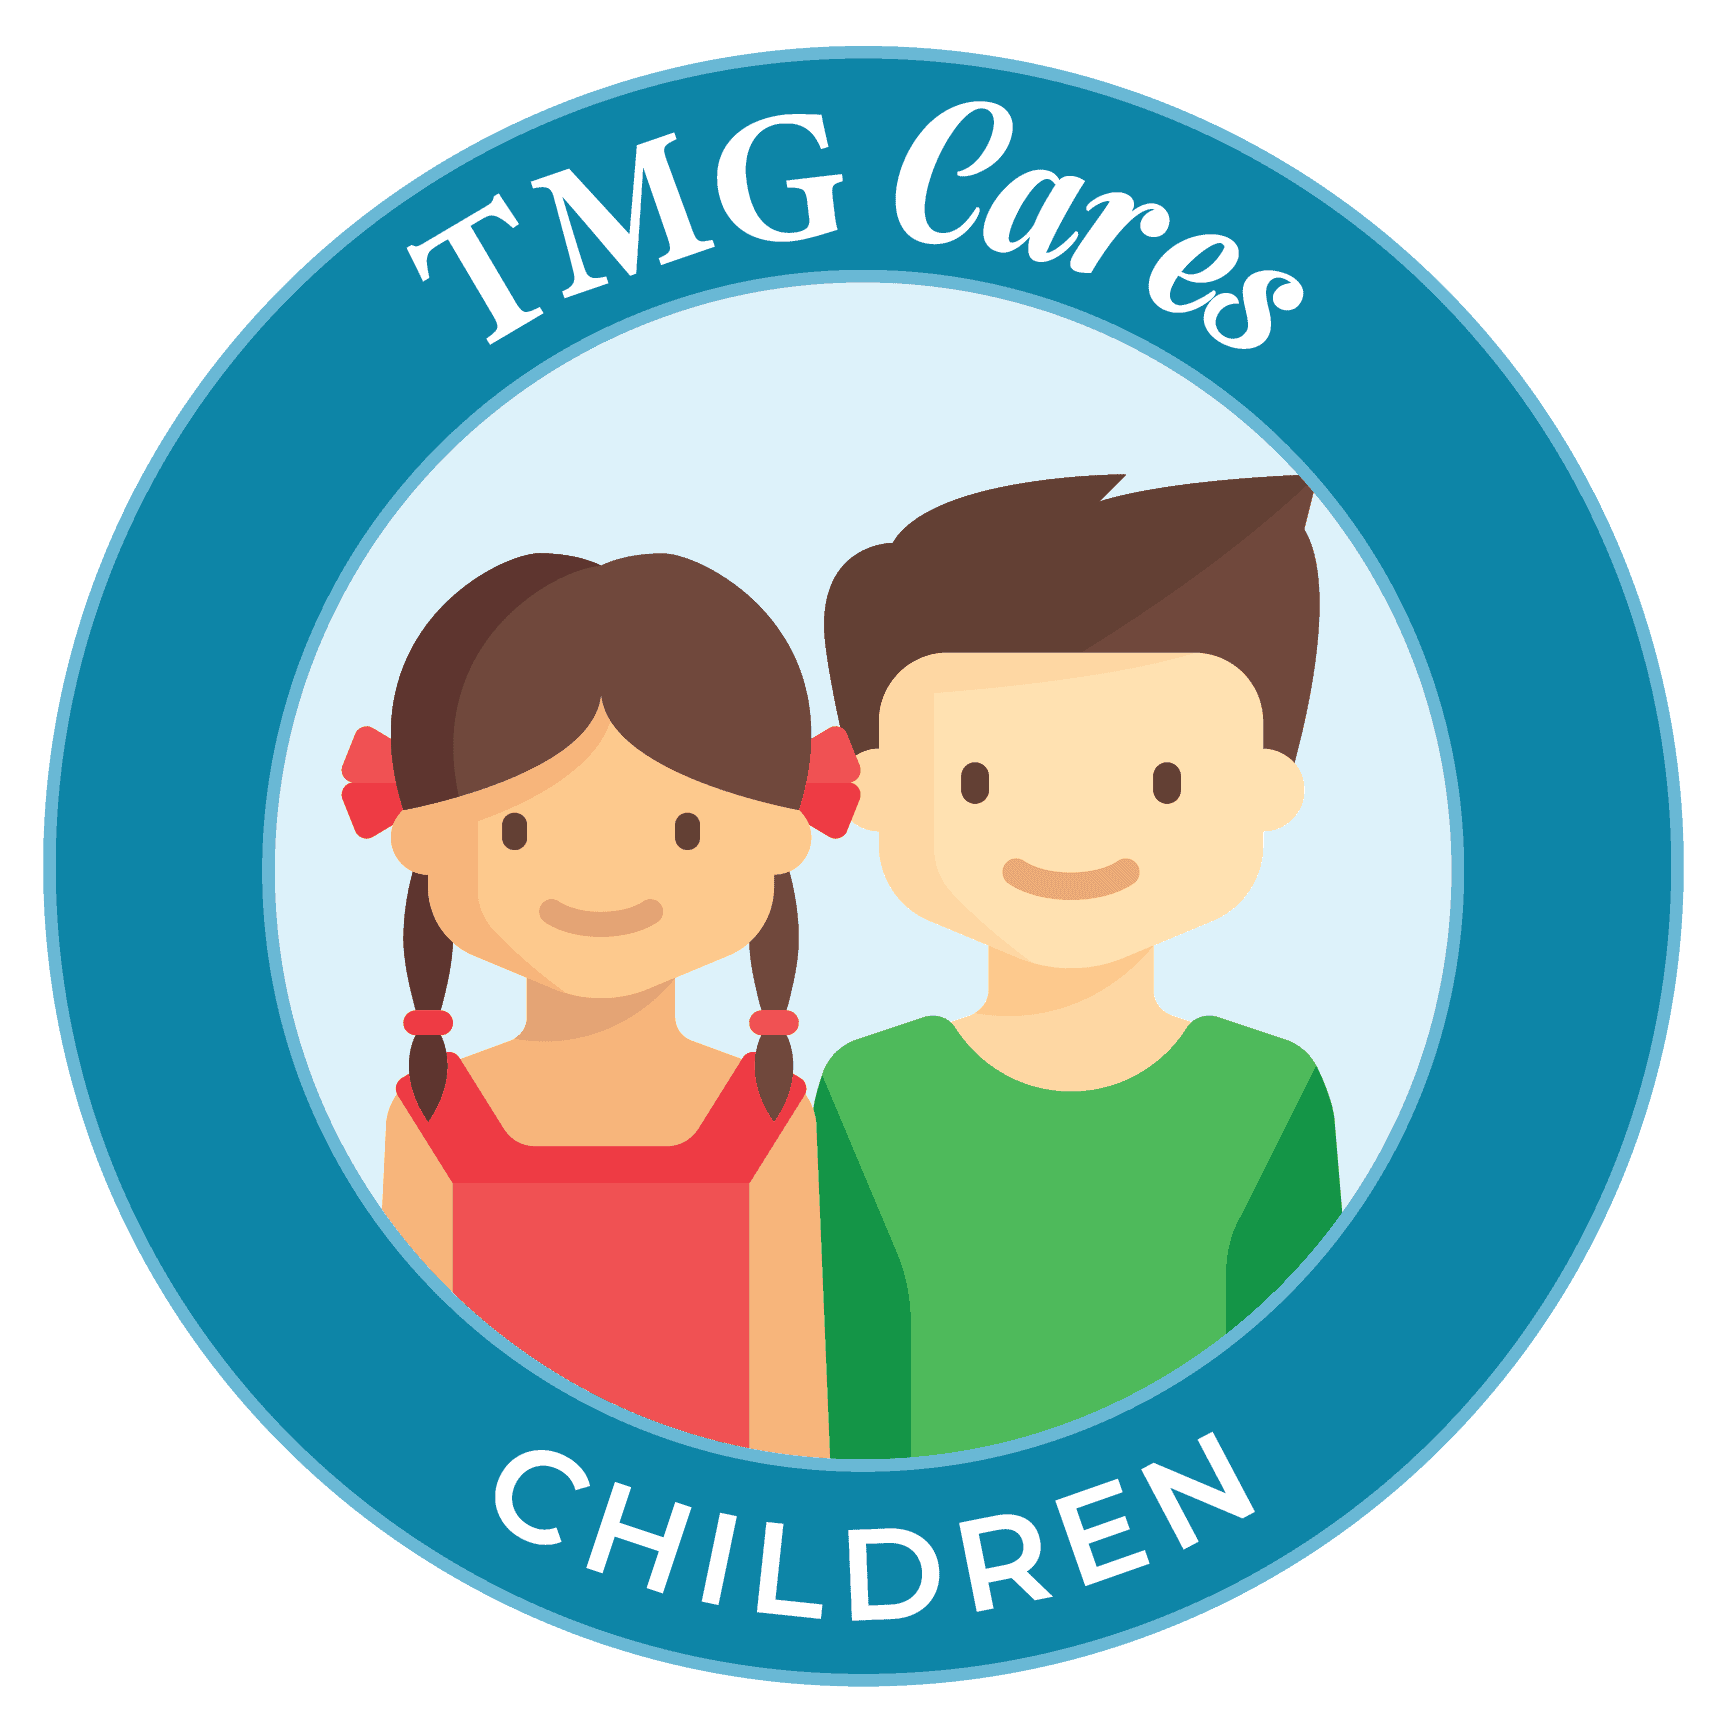 TMG Cares division logos_Children